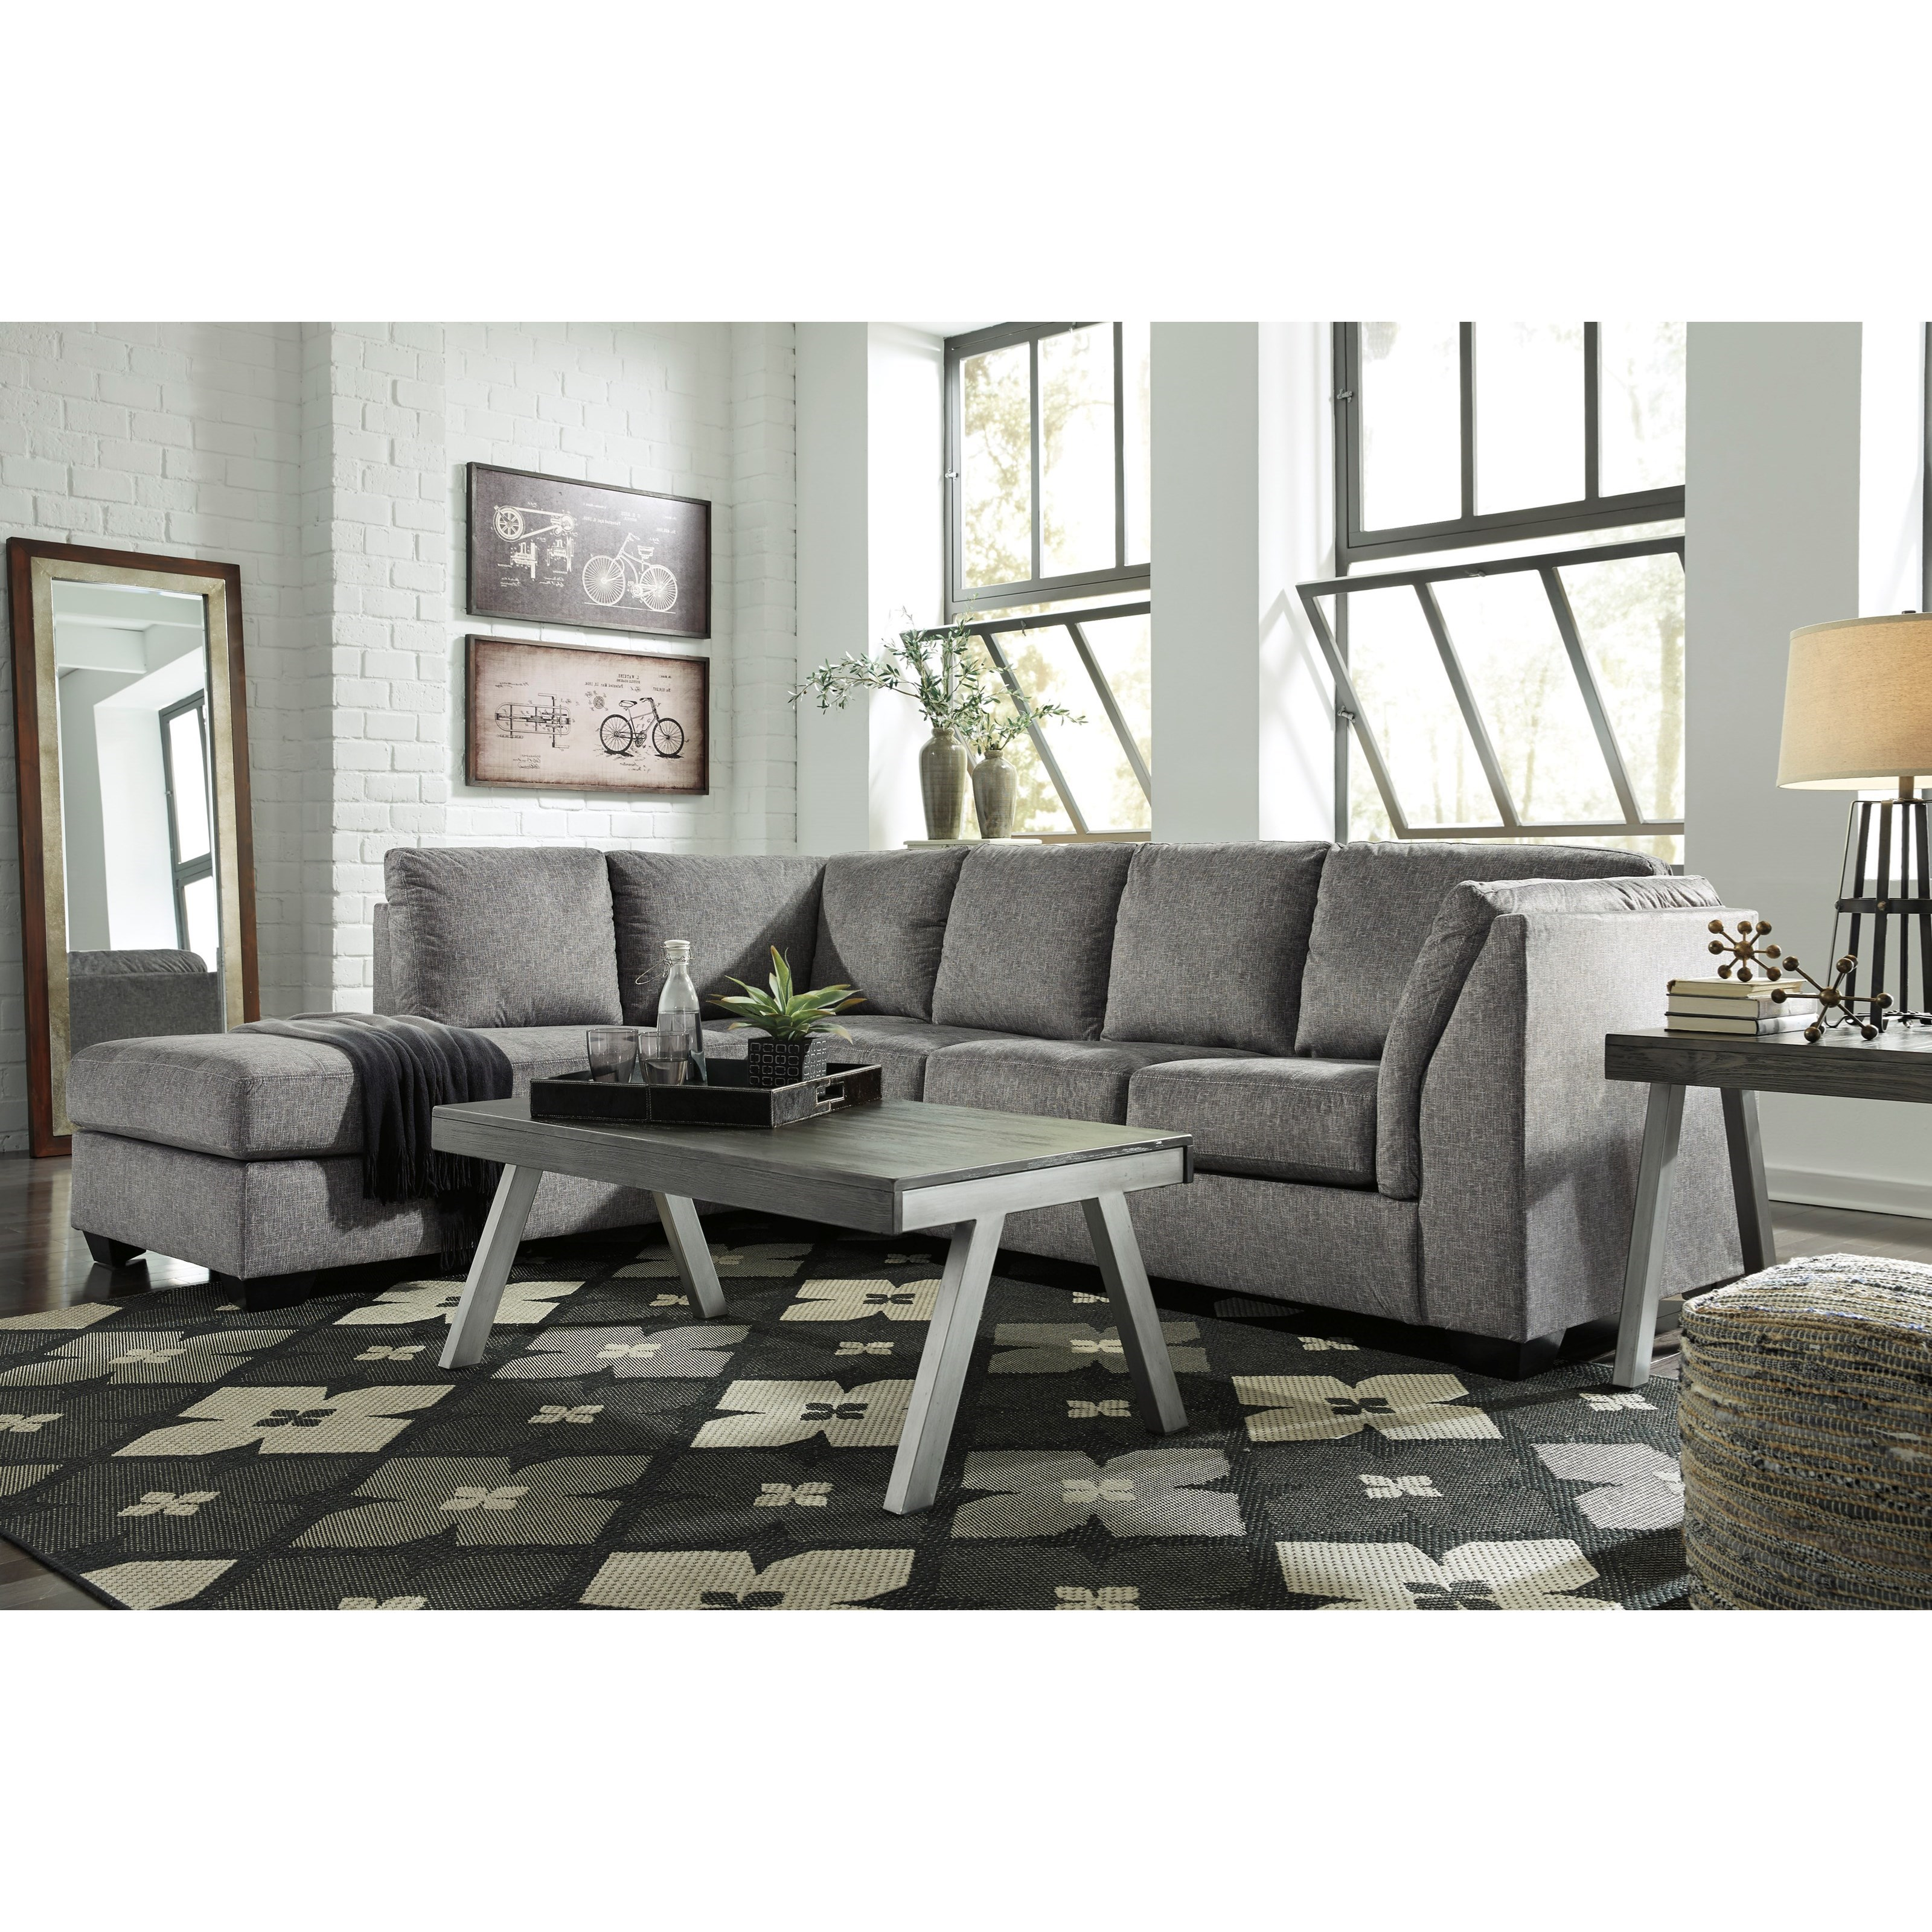 Benchcraft by ashley belcastel 2 piece sectional with left for 2 piece sectional sofa with chaise